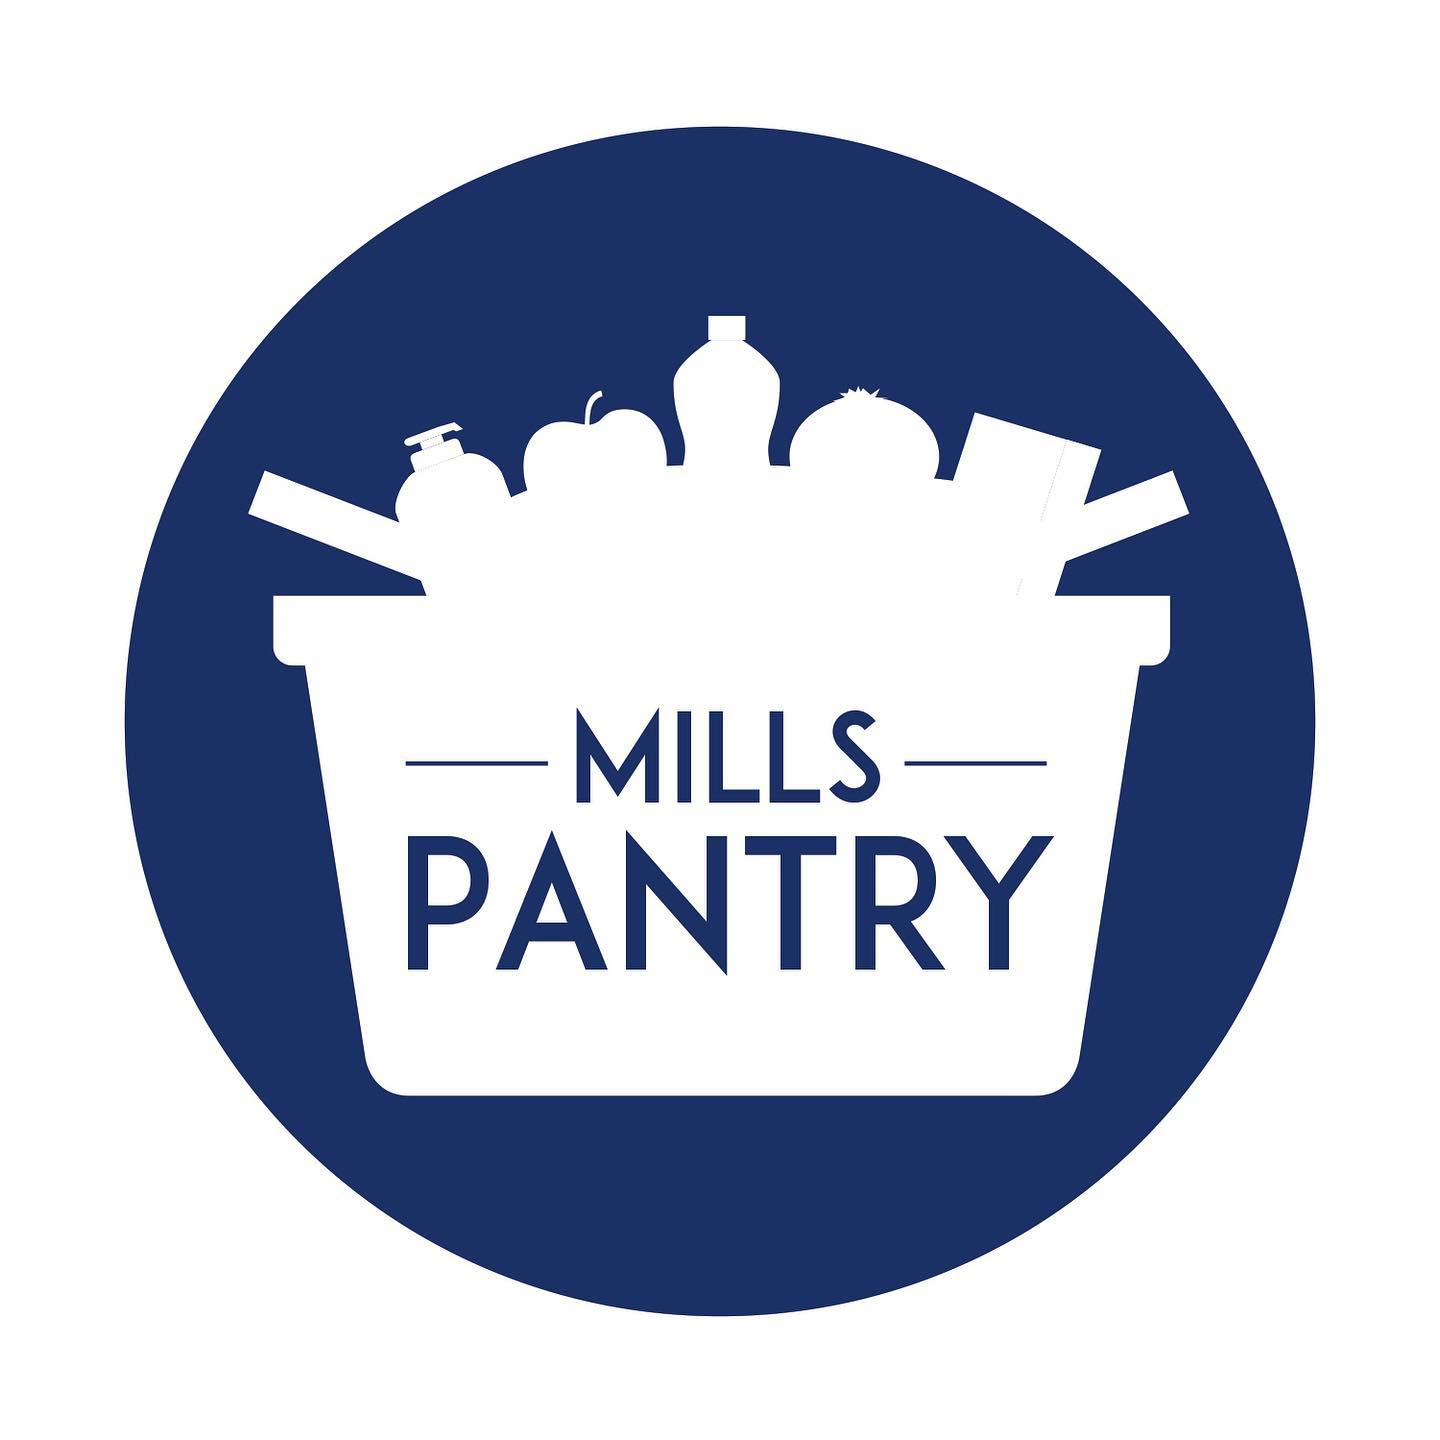 Mills Pantry text in blue, in white basket surrounded by blue circle.